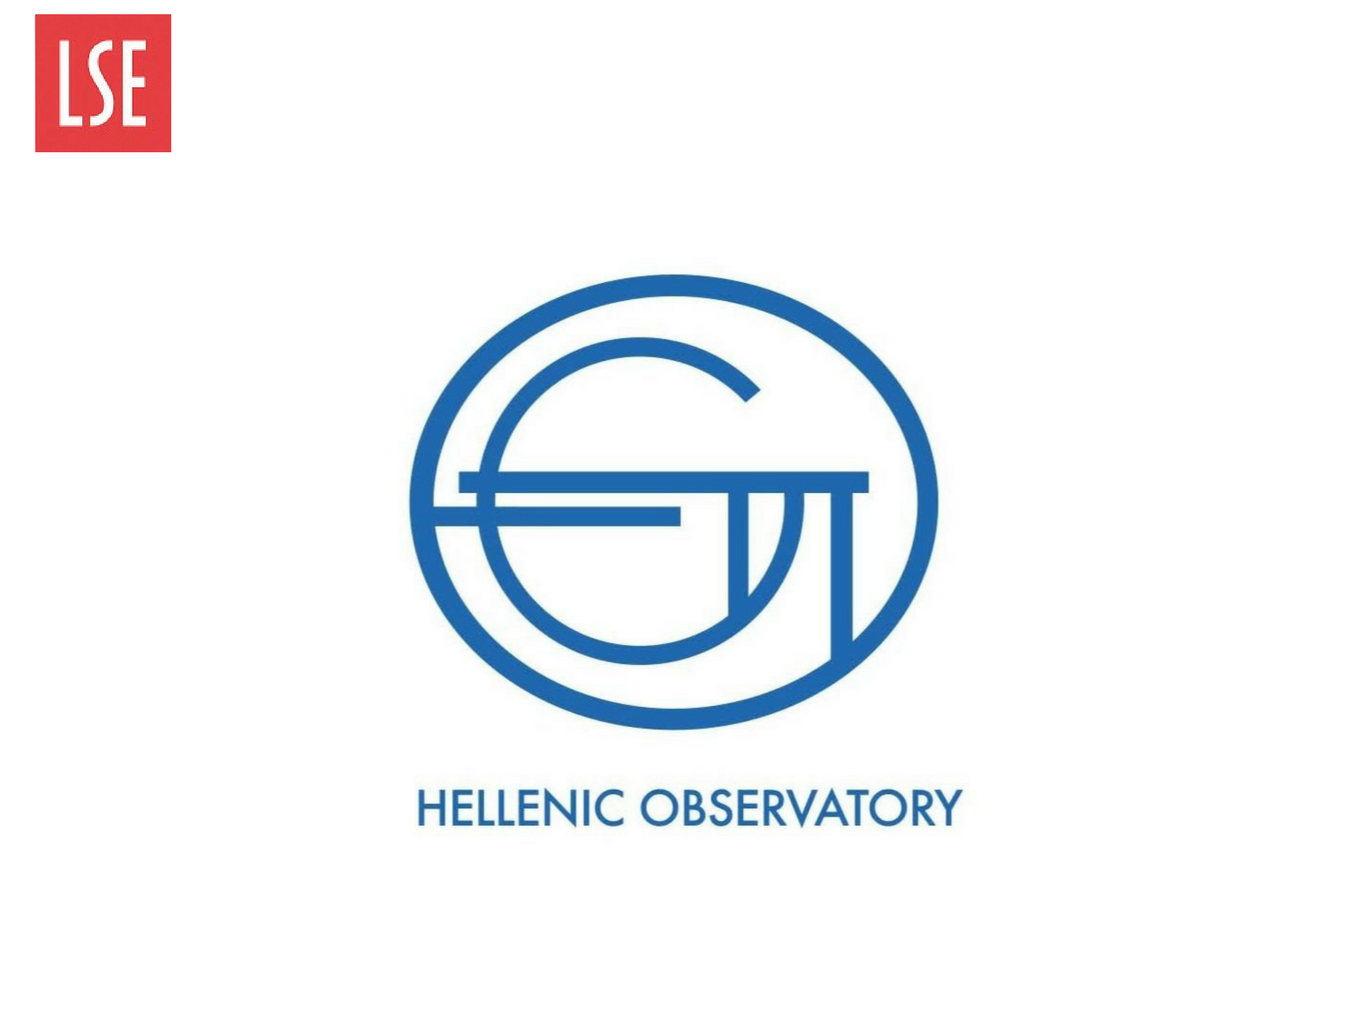 An Introduction to LSE's Hellenic Observatory